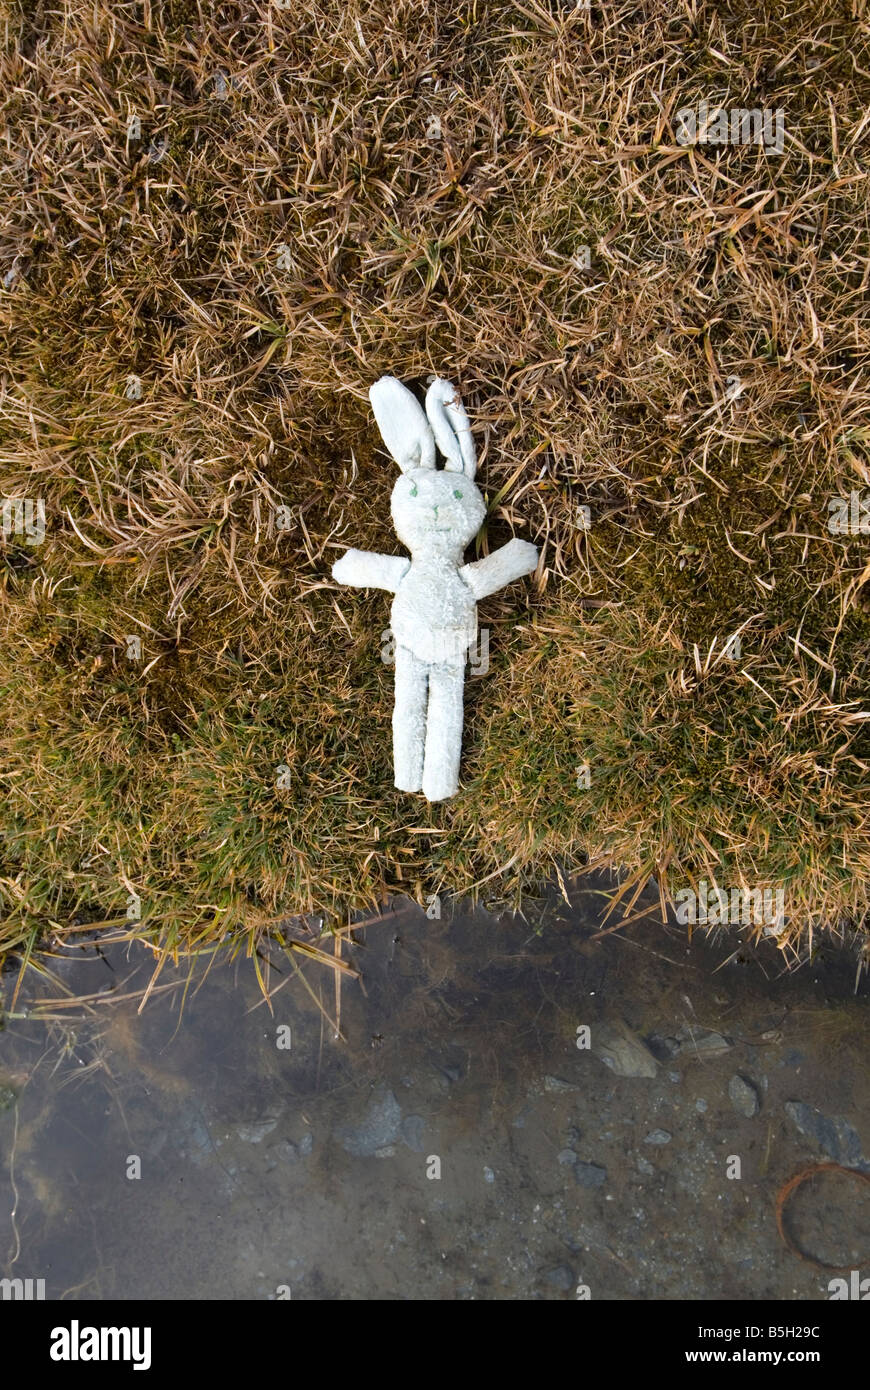 Abandoned child s toy rabbit laying on grass beside waters edge Abstract - Stock Image